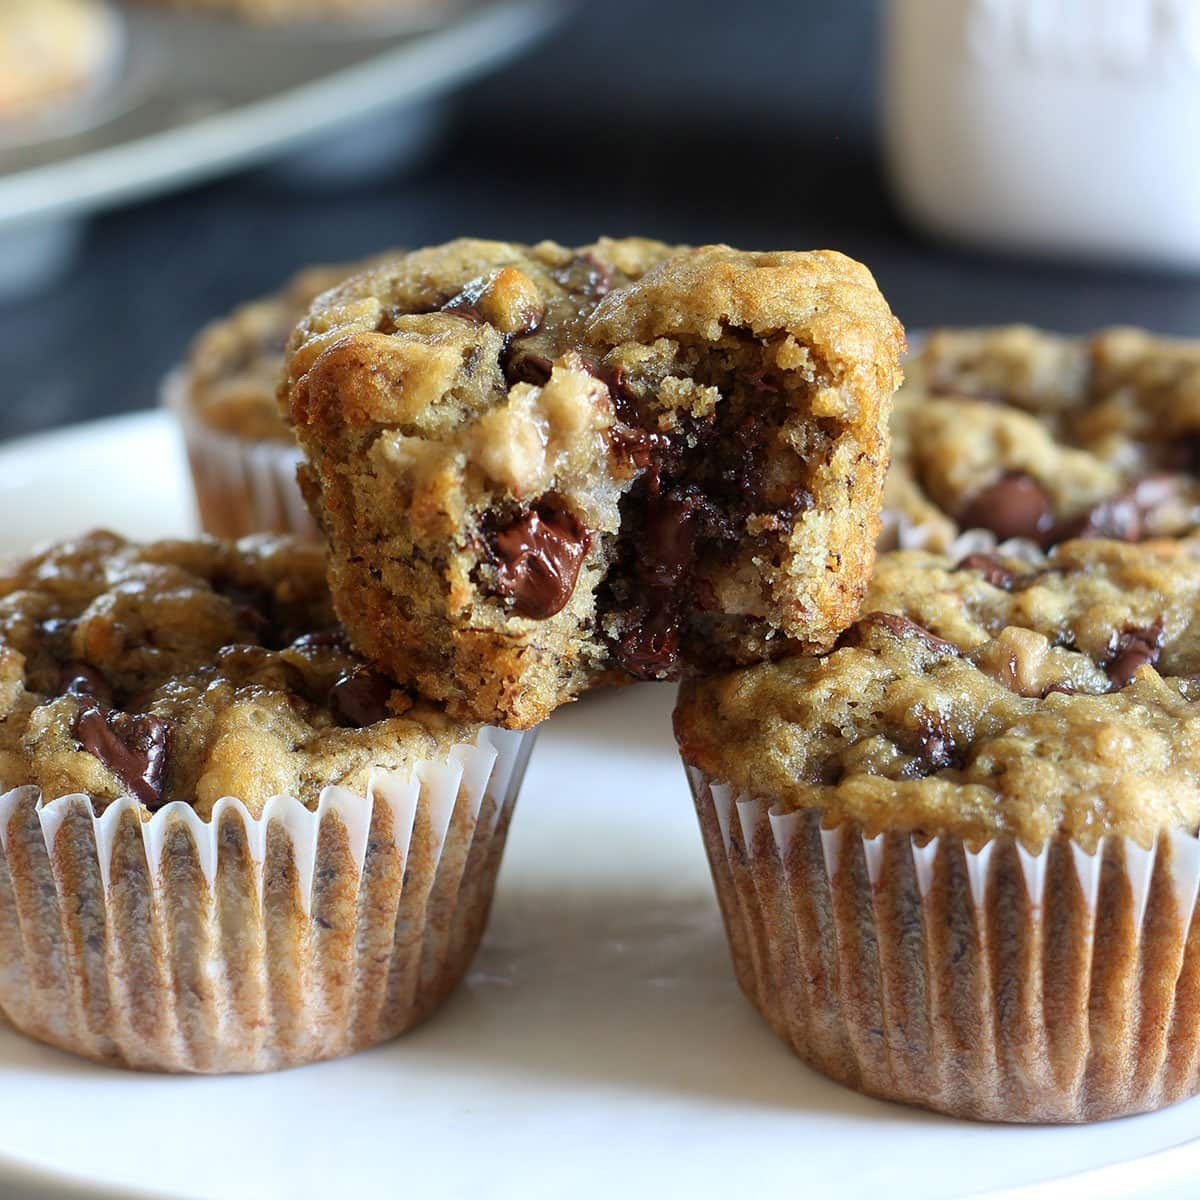 Banana Espresso Chocolate Chip Muffins - Handle the Heat